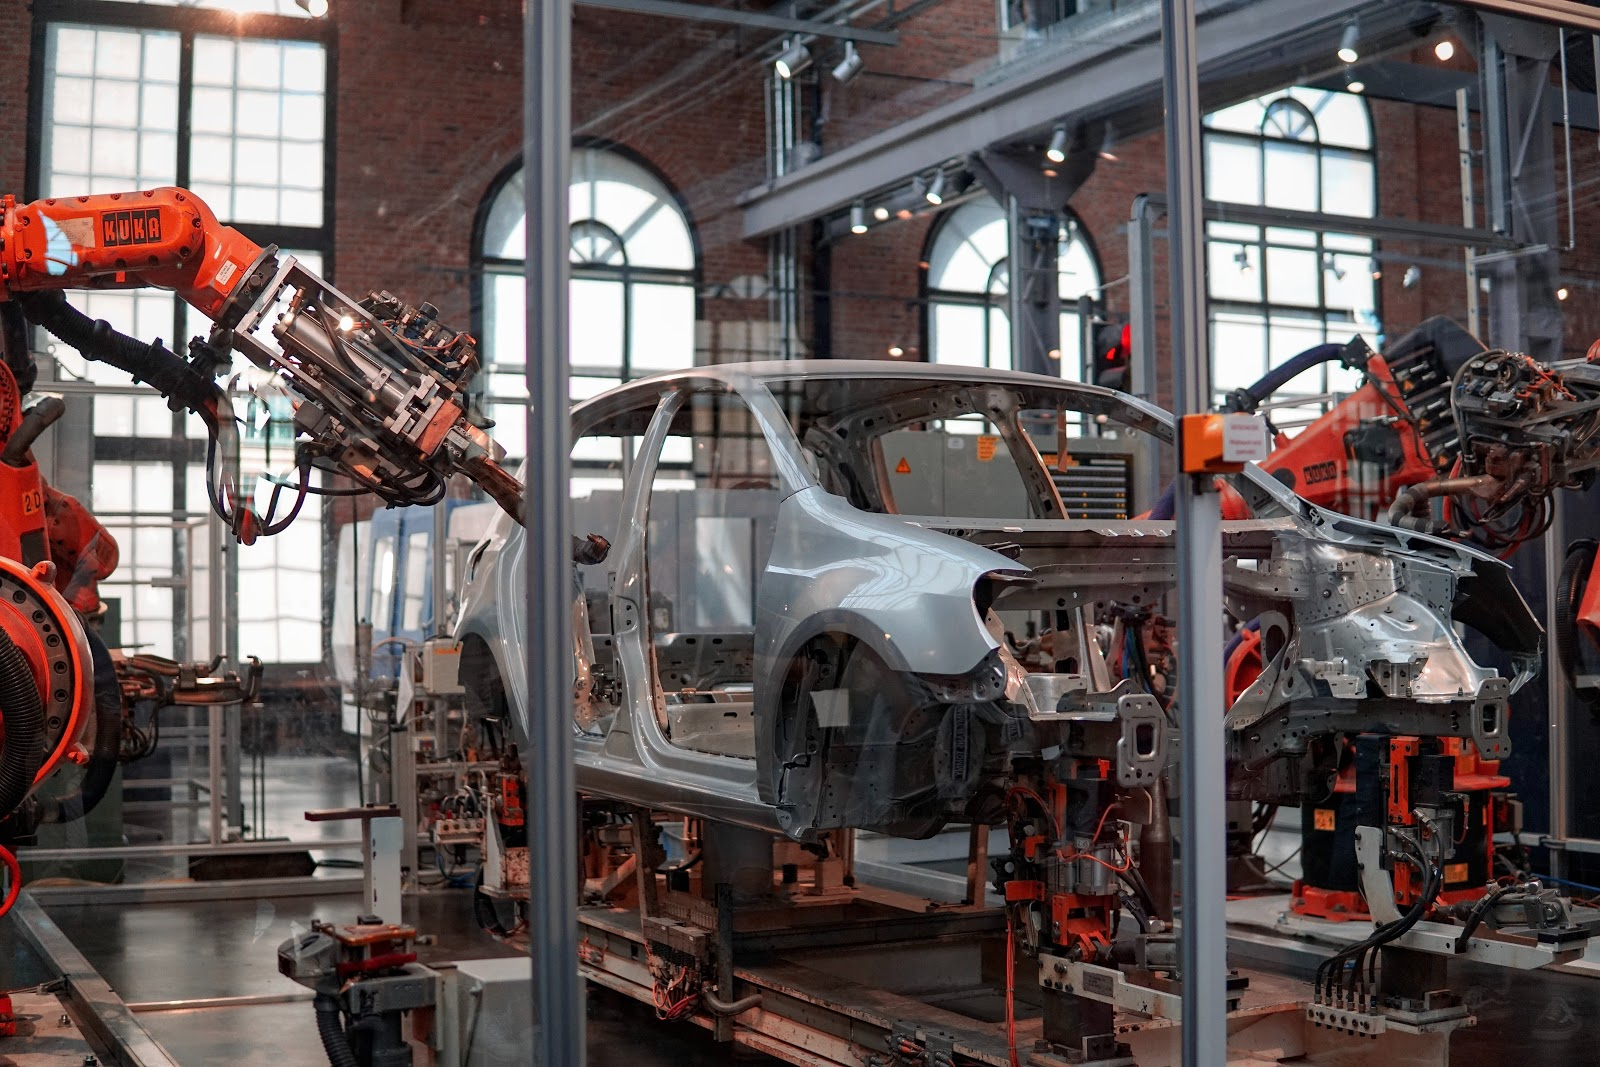 A car in a factory, being constructed by machines.